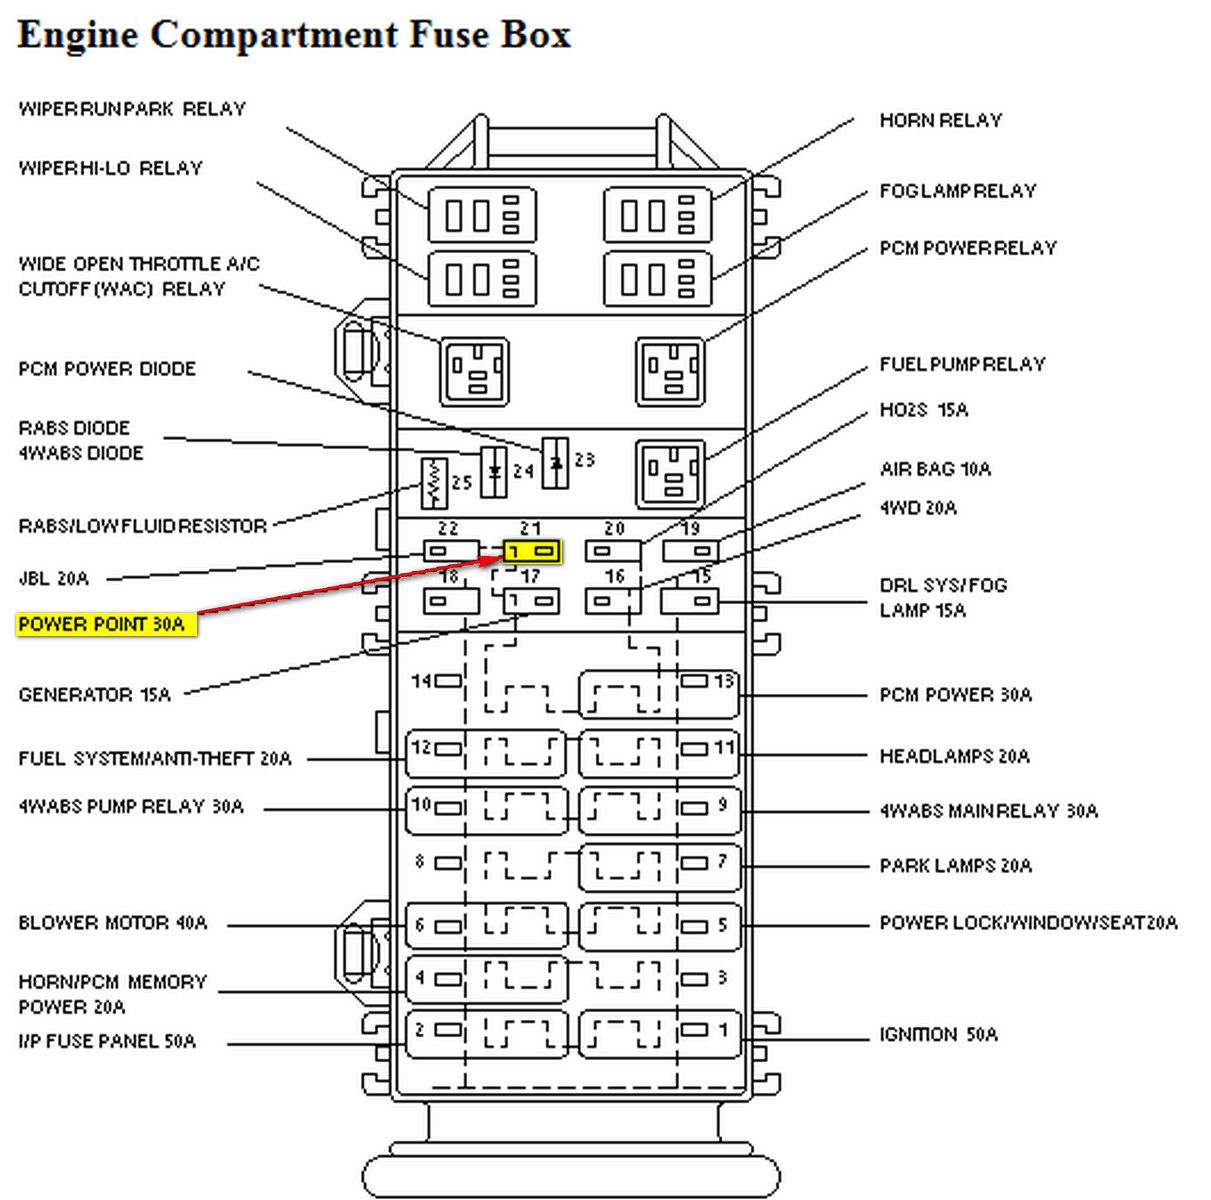 8a55967da7ae1bd251b795845886bd24 2002 ford ranger fuse diagram 1997 ford ranger fuse box diagram 2003 ford ranger fuse box at gsmx.co